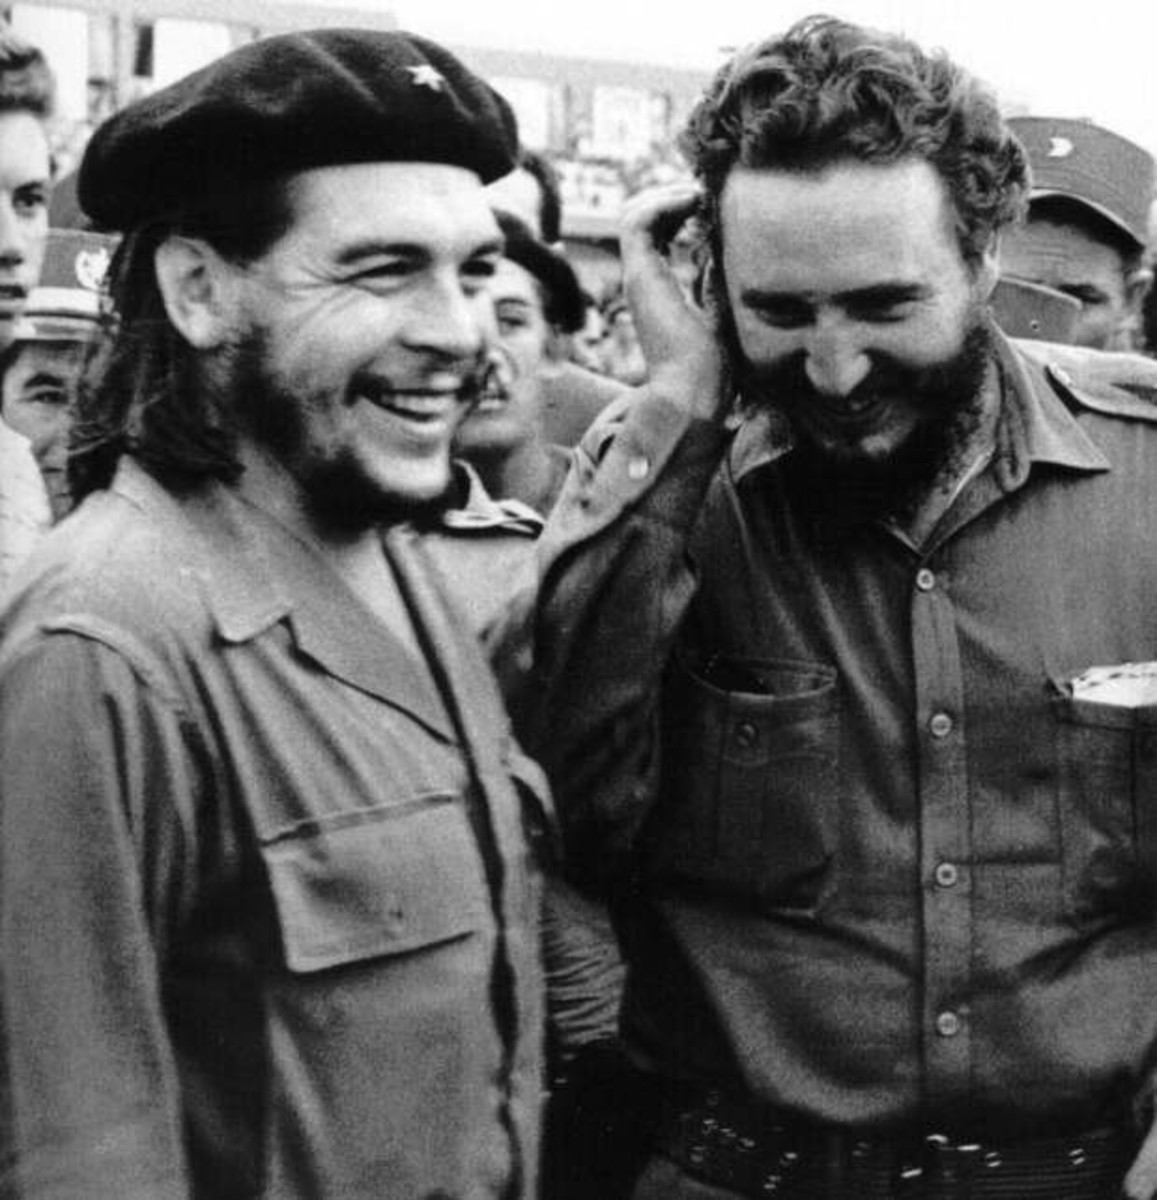 TALE OF TWO SOCIALISTS THE MURDERER CHE GUEVARA (DARLING OF THE AMERICAN LEFT) AND FIDEL CASTRO (DARLING OF HOLLYWOOD)